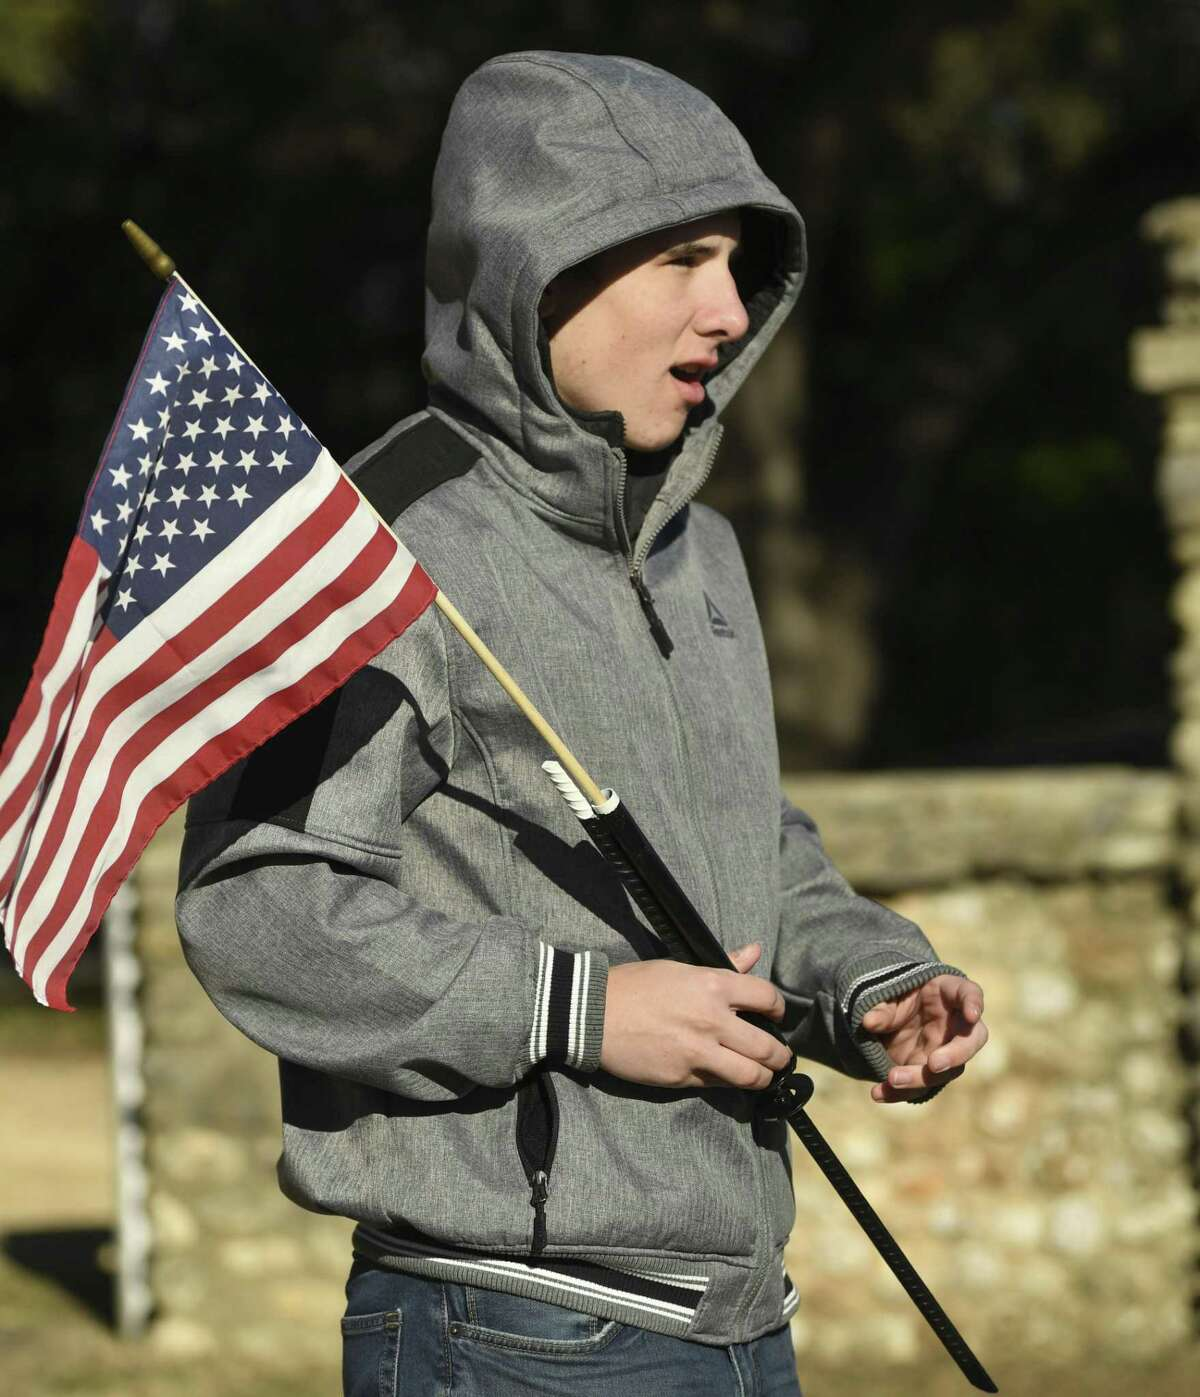 Nathan Burden, 17, has a deep respect for veterans. He is a prospective Eagle Scout. He holds a flag holder which he designed and obtained material and volunteer support to build for the graves of military veterans at Blanco Cemetery.